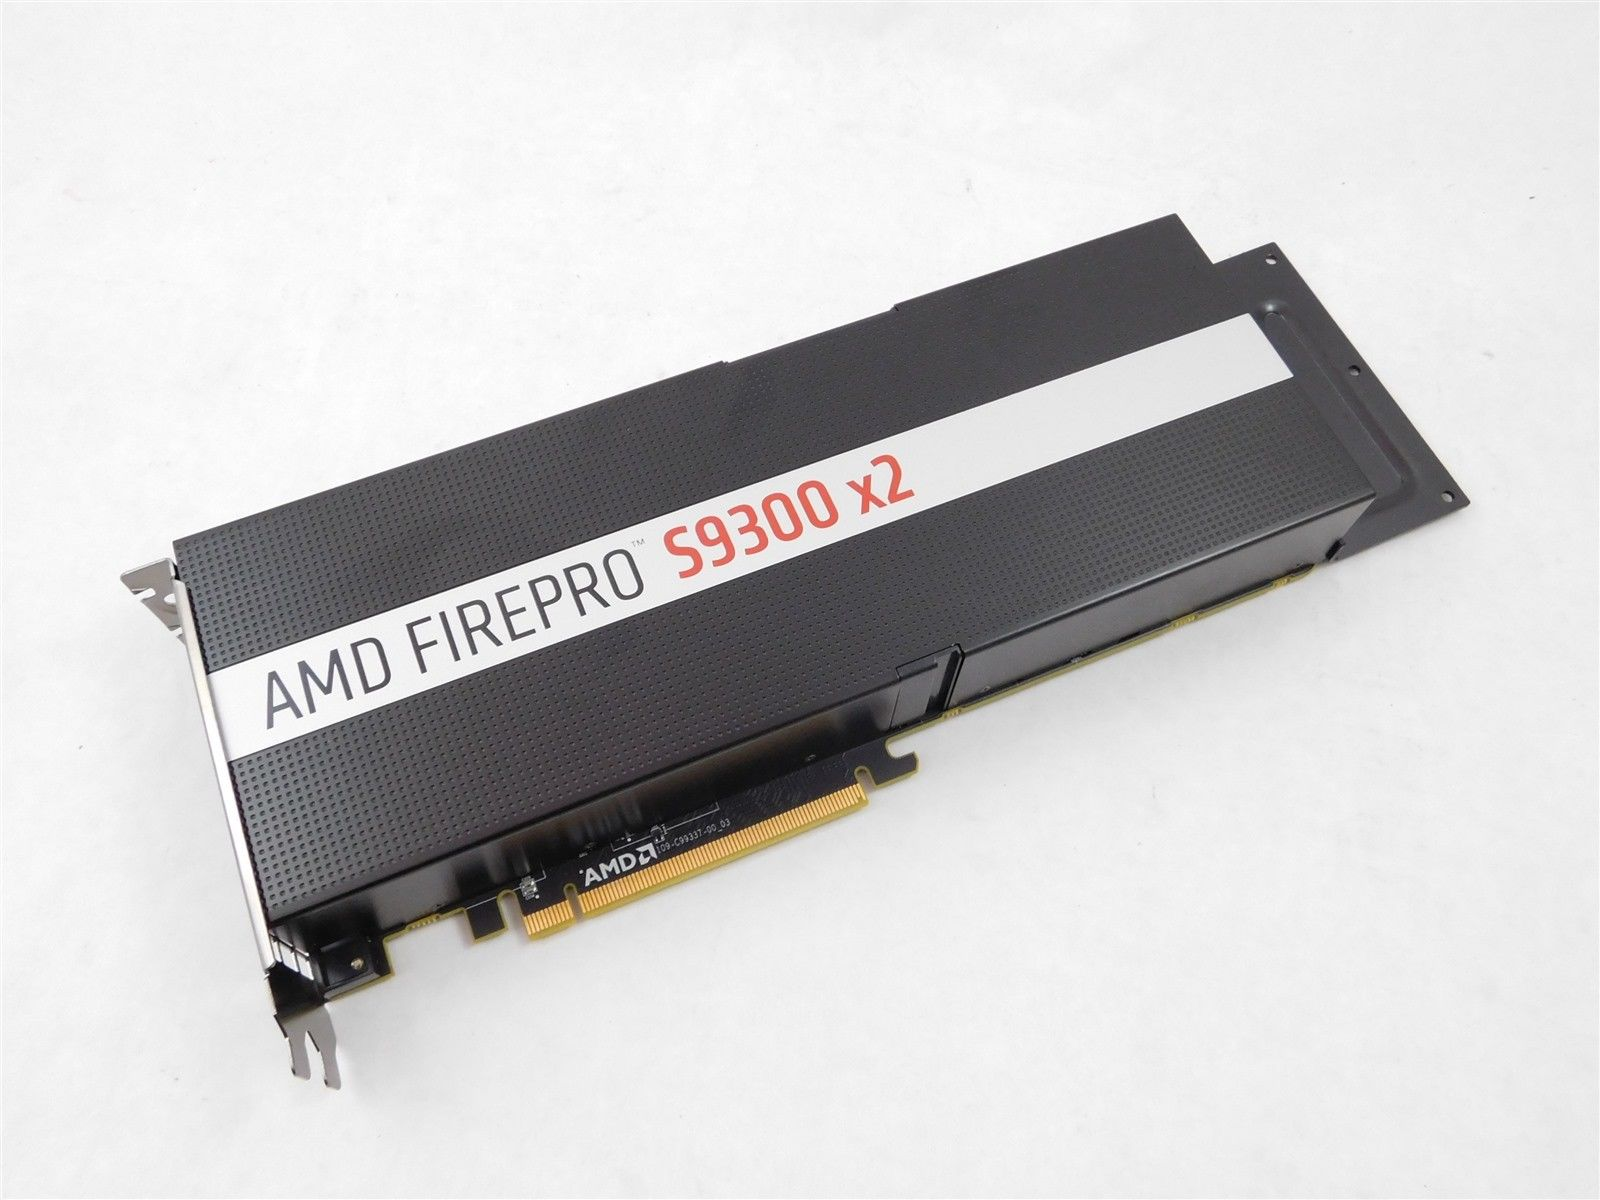 AMD FirePro S9300 X2 Server GPU 8GB HBM PCIe 3 0 GPU Accelerator - New  Factory Sealed